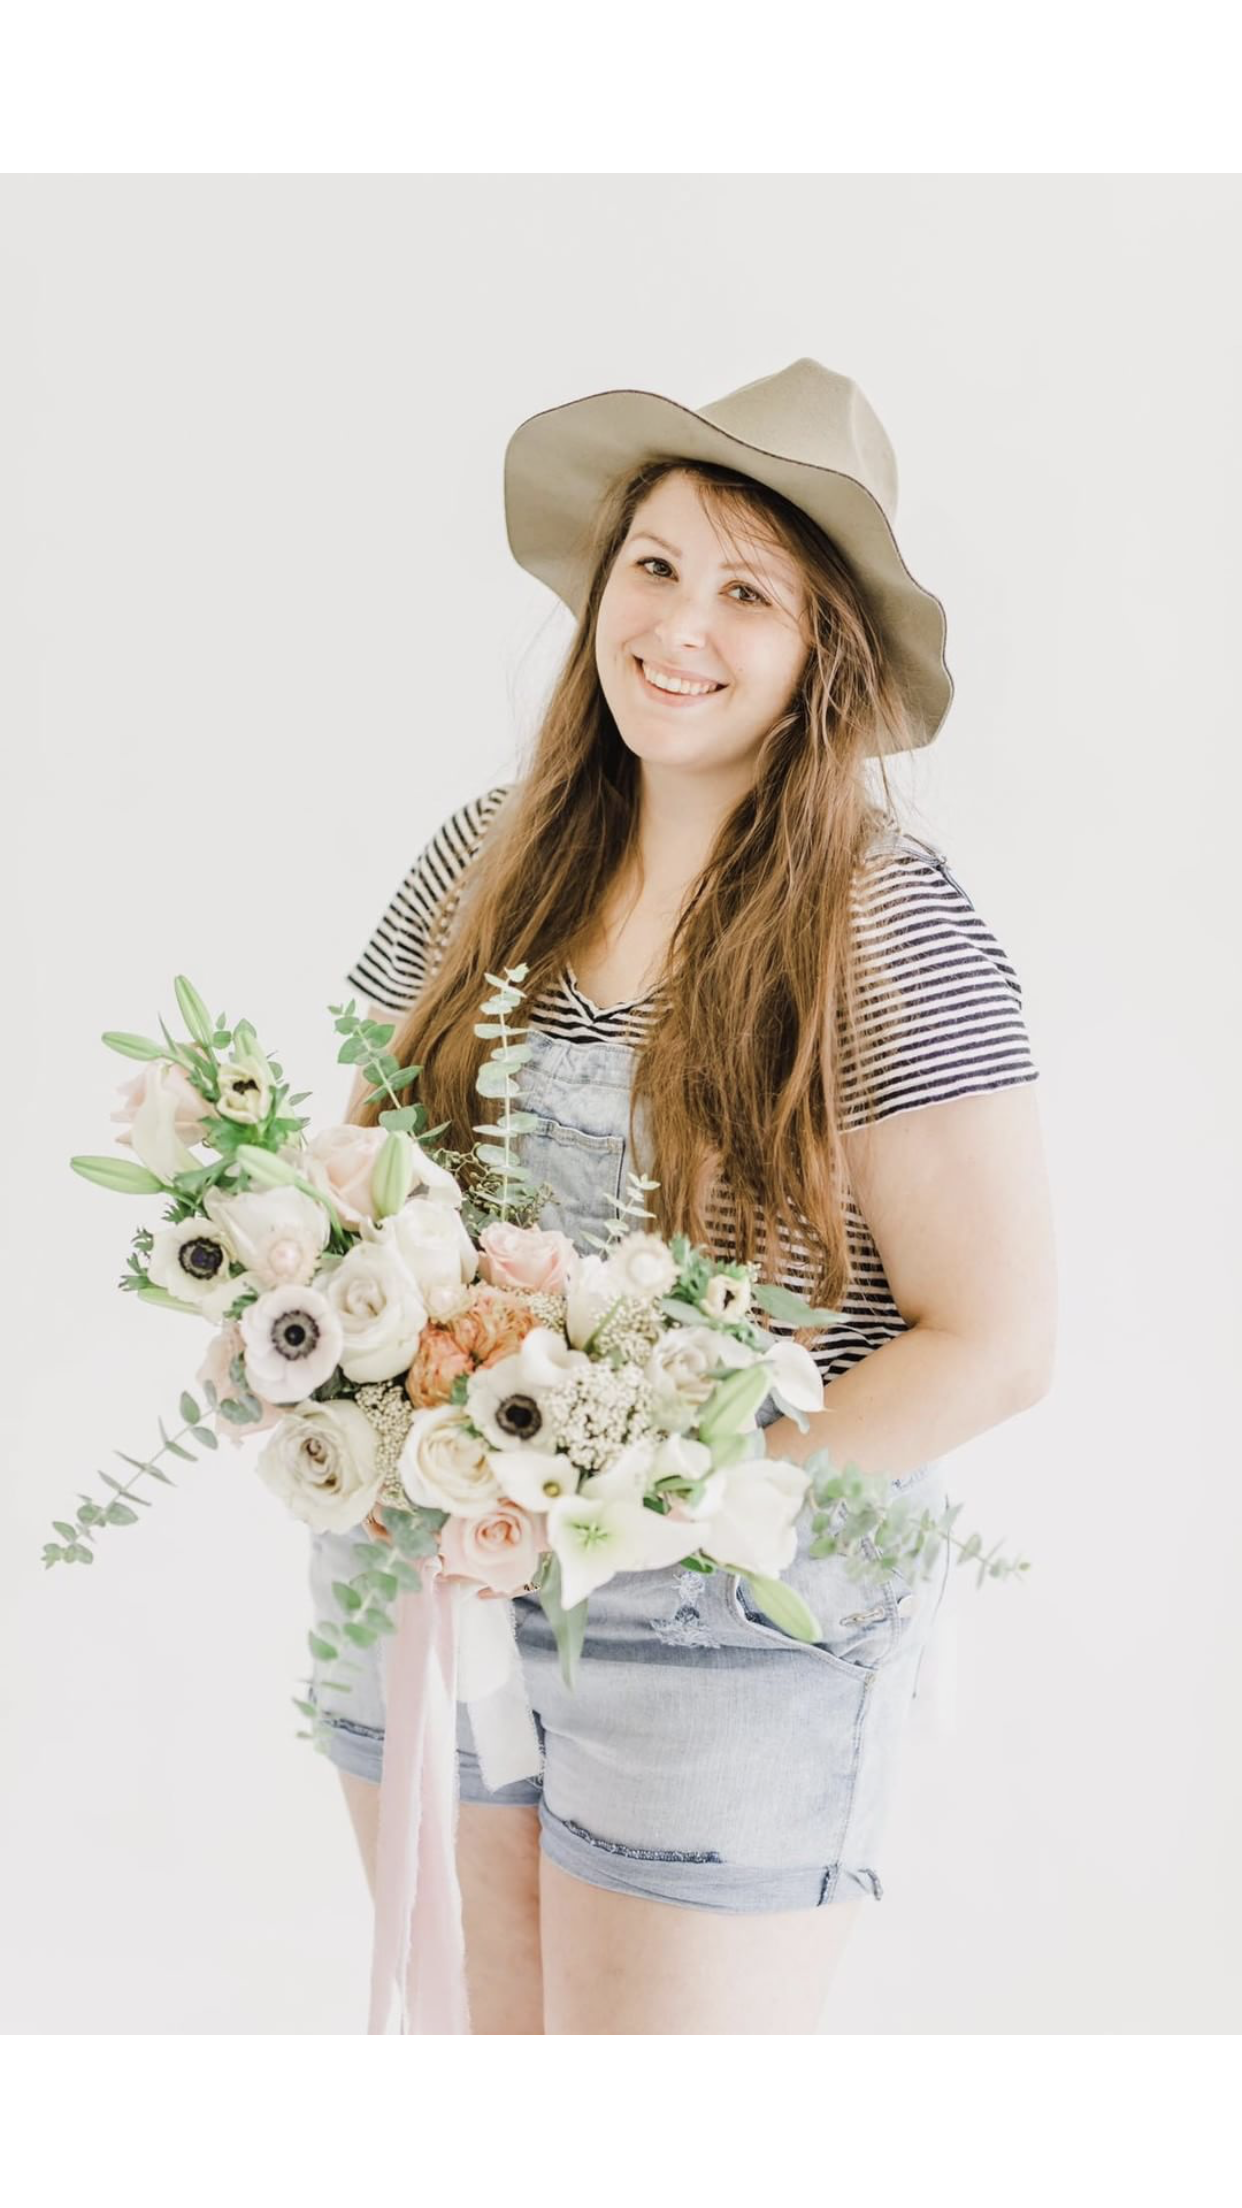 Amanda Bowman - Owner of Amanda Bee's Floral Designs